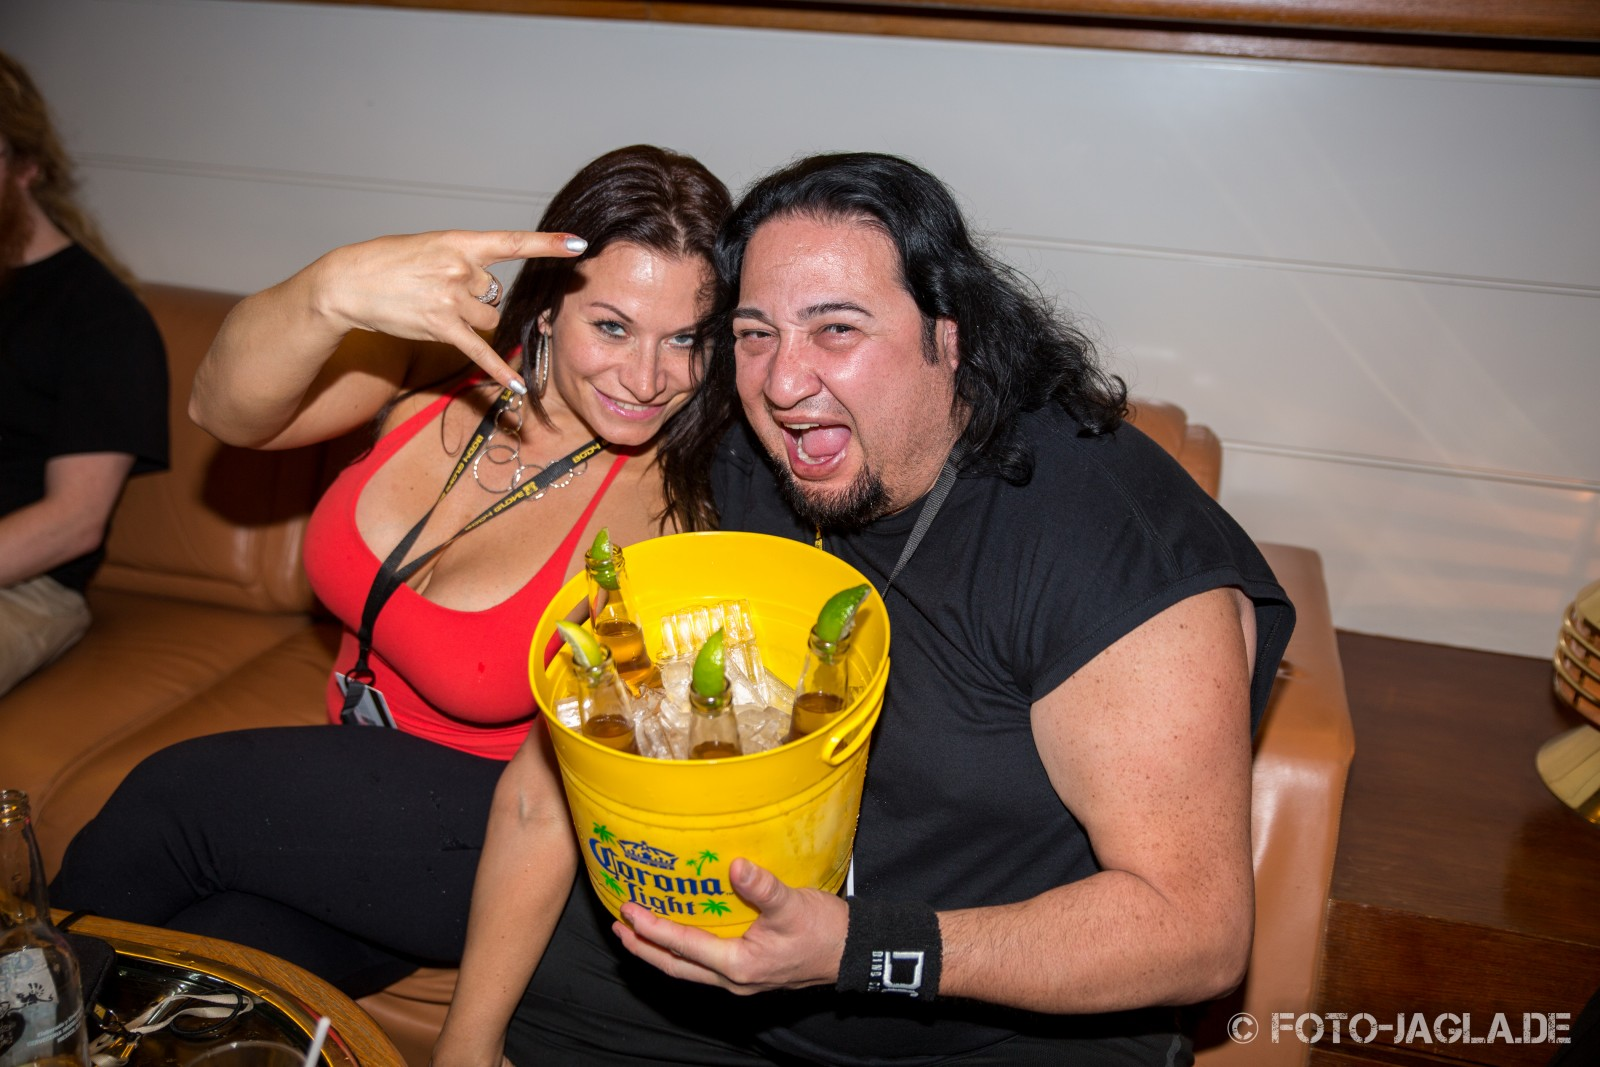 70000 Tons of Metal 2014 ::. Dino from Fear Factory has much fun